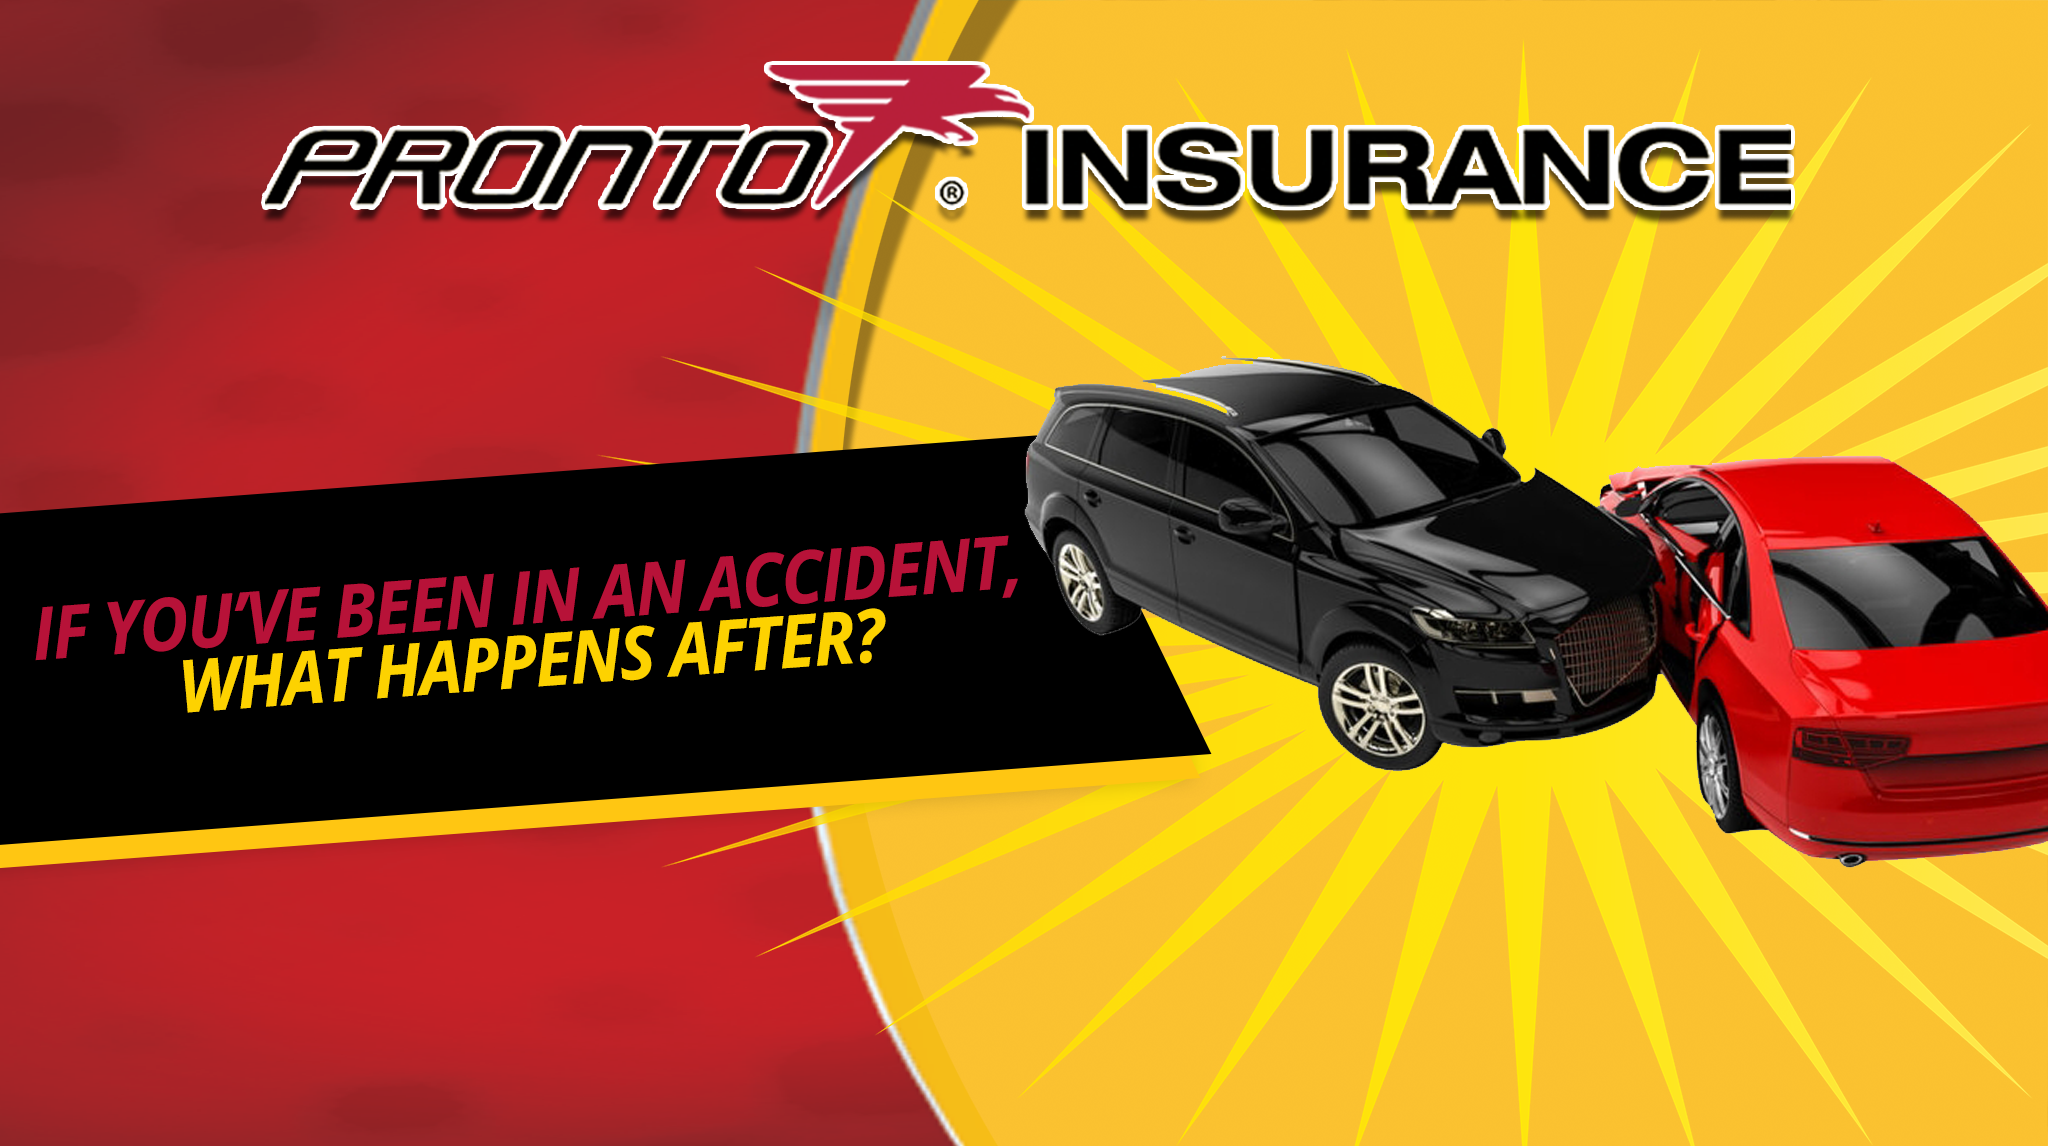 If You've Been in an Accident, What Happens After?